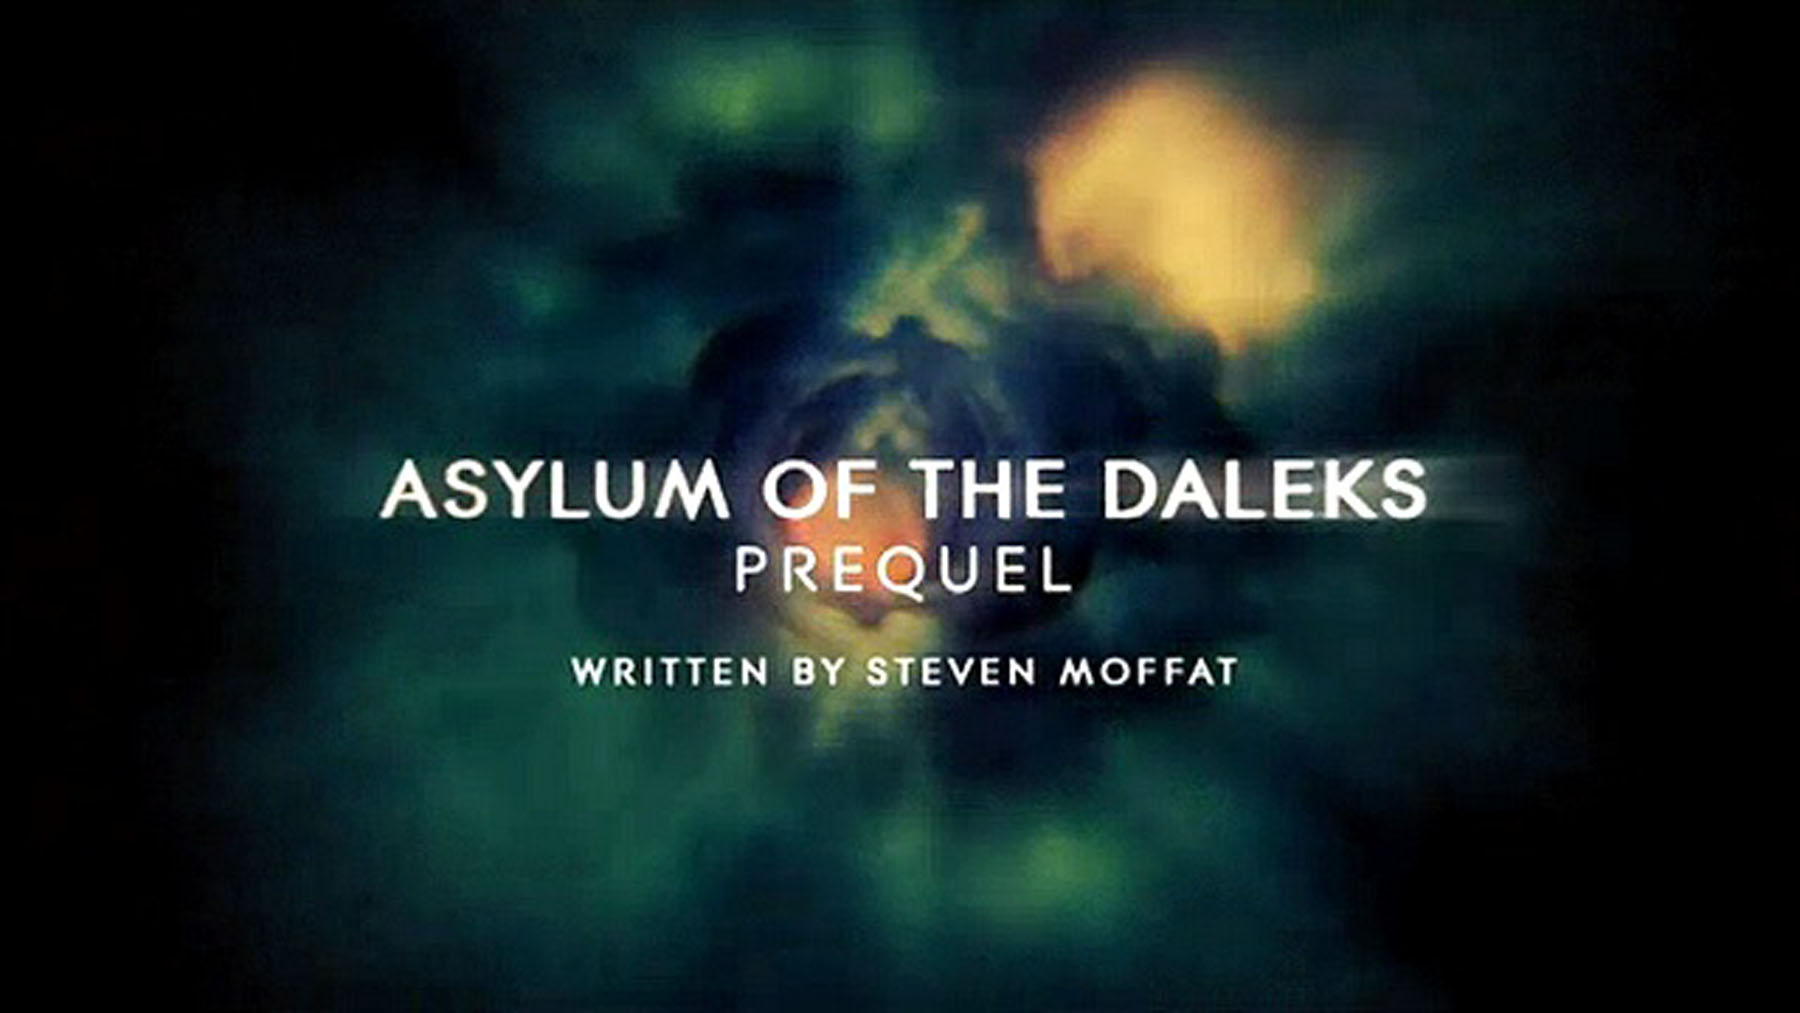 Asylum of the Daleks Prequel